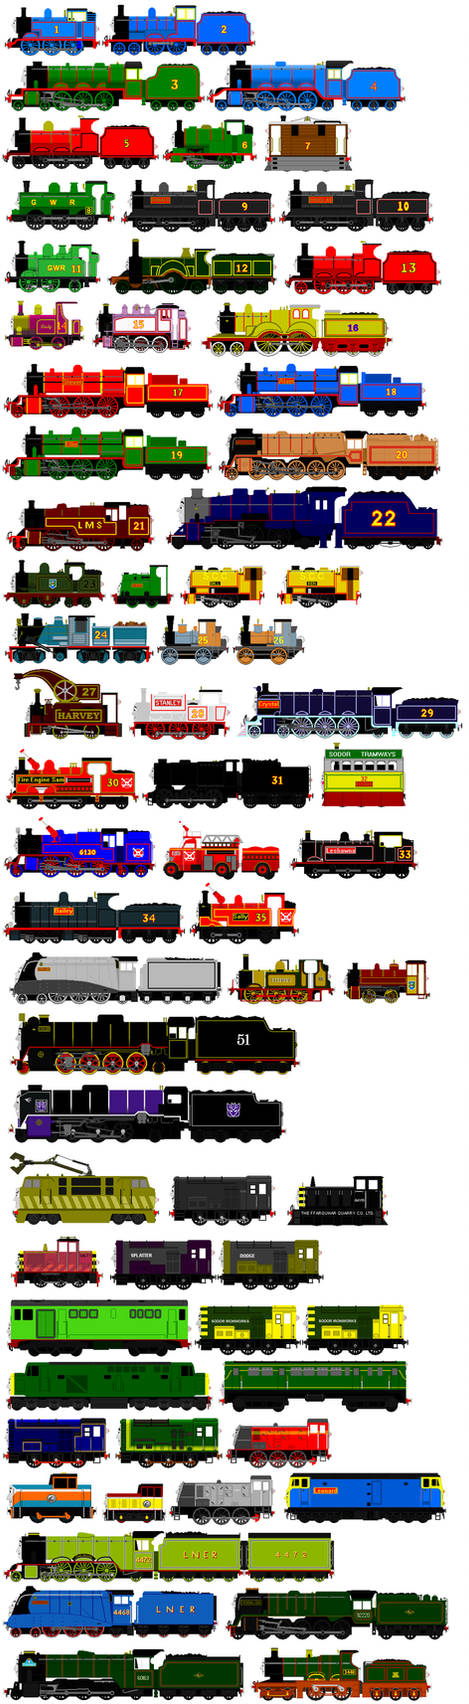 Thomas And Friends Animated Characters 6 By Jamesfan1991 On Deviantart